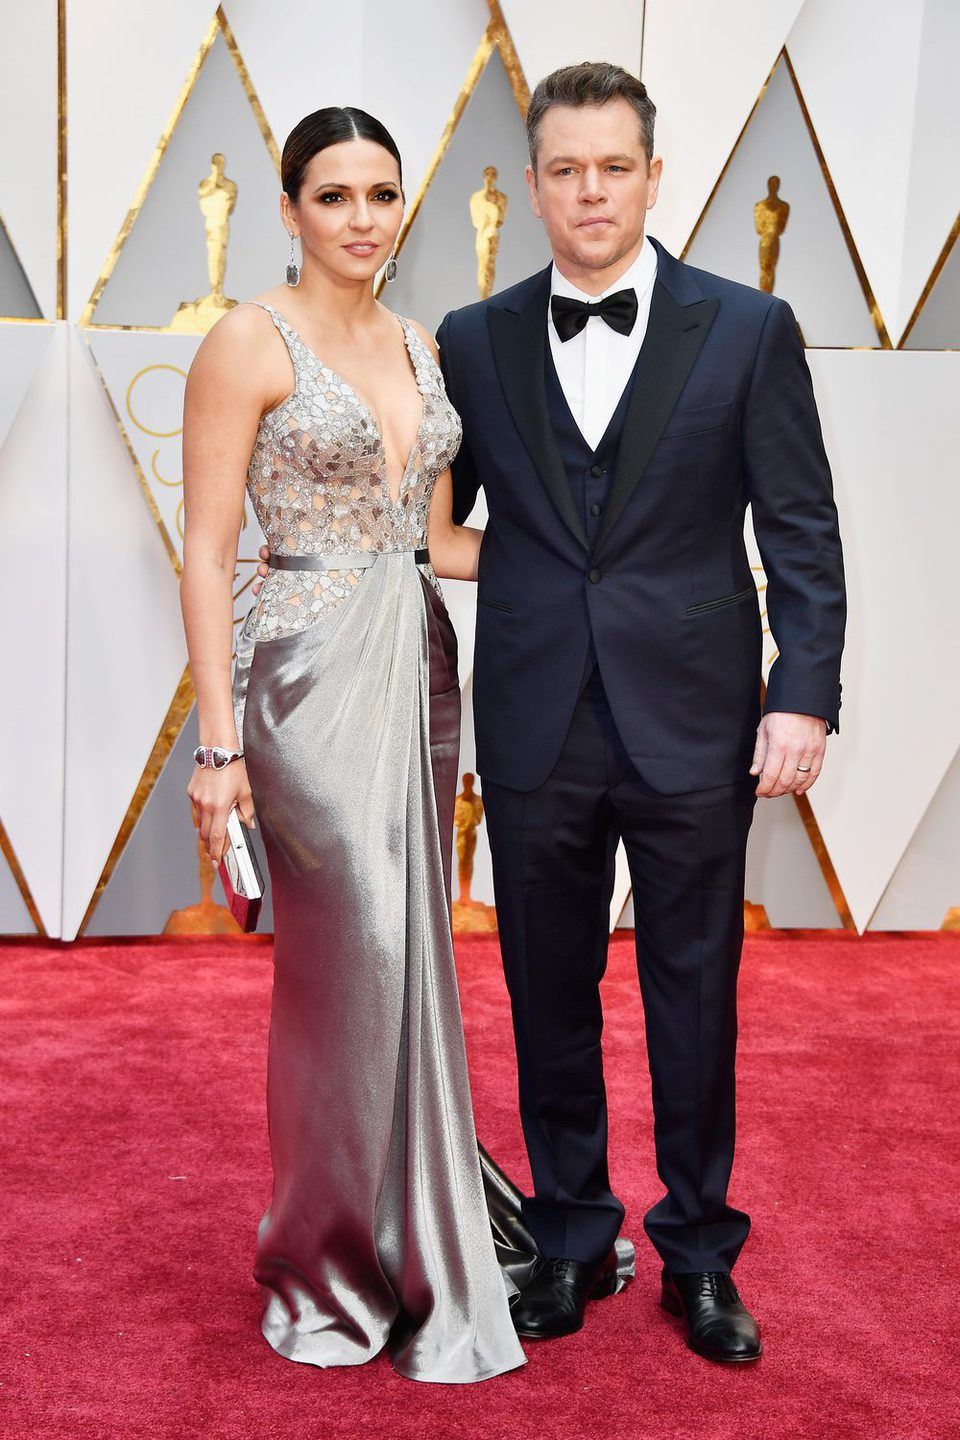 Matt Damon and Luciana Barroso at the red carpet of the Oscars 2017